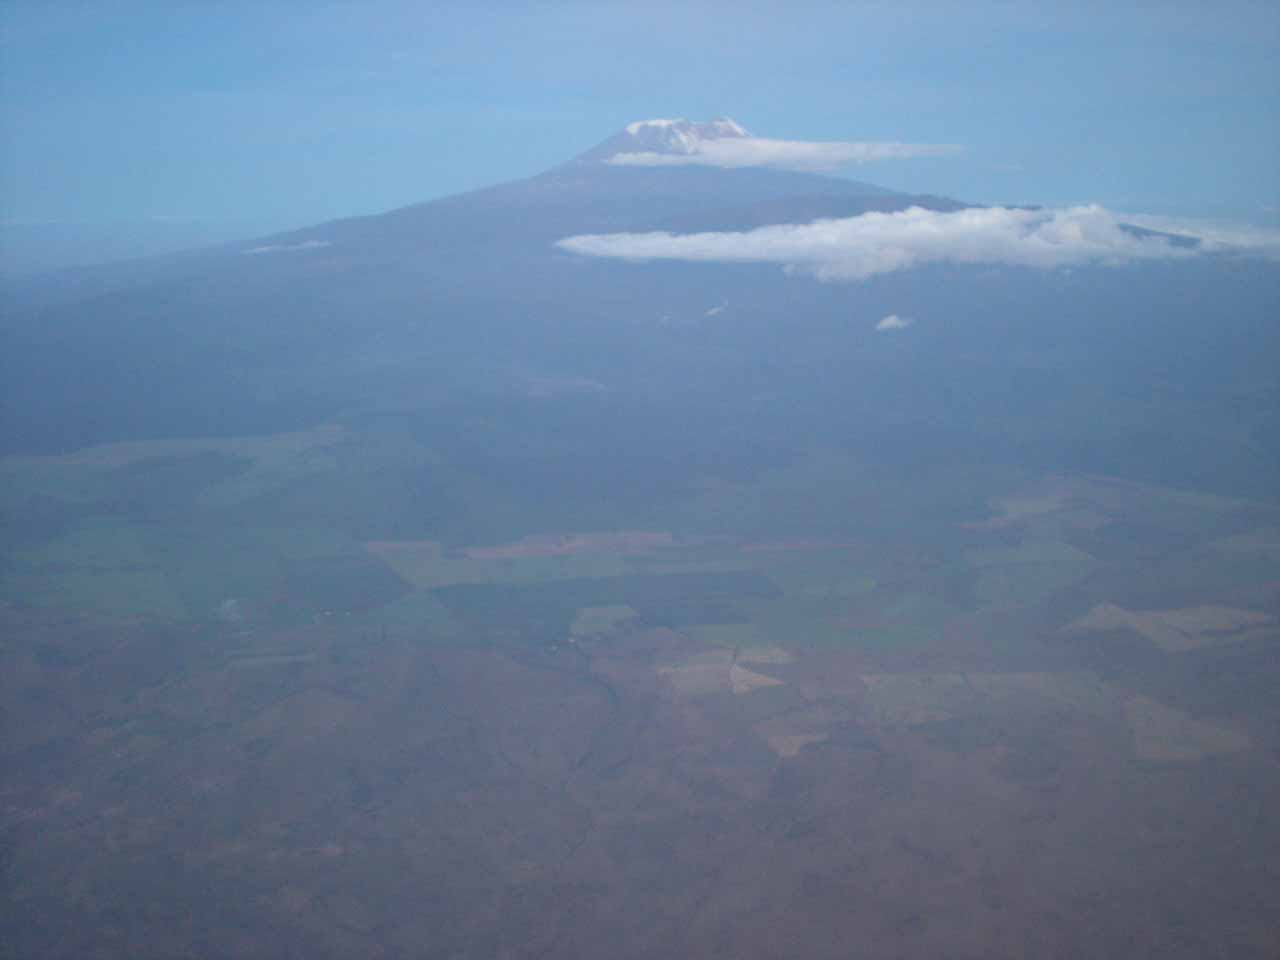 The only time Mt Kilimanjaro was mostly free of clouds